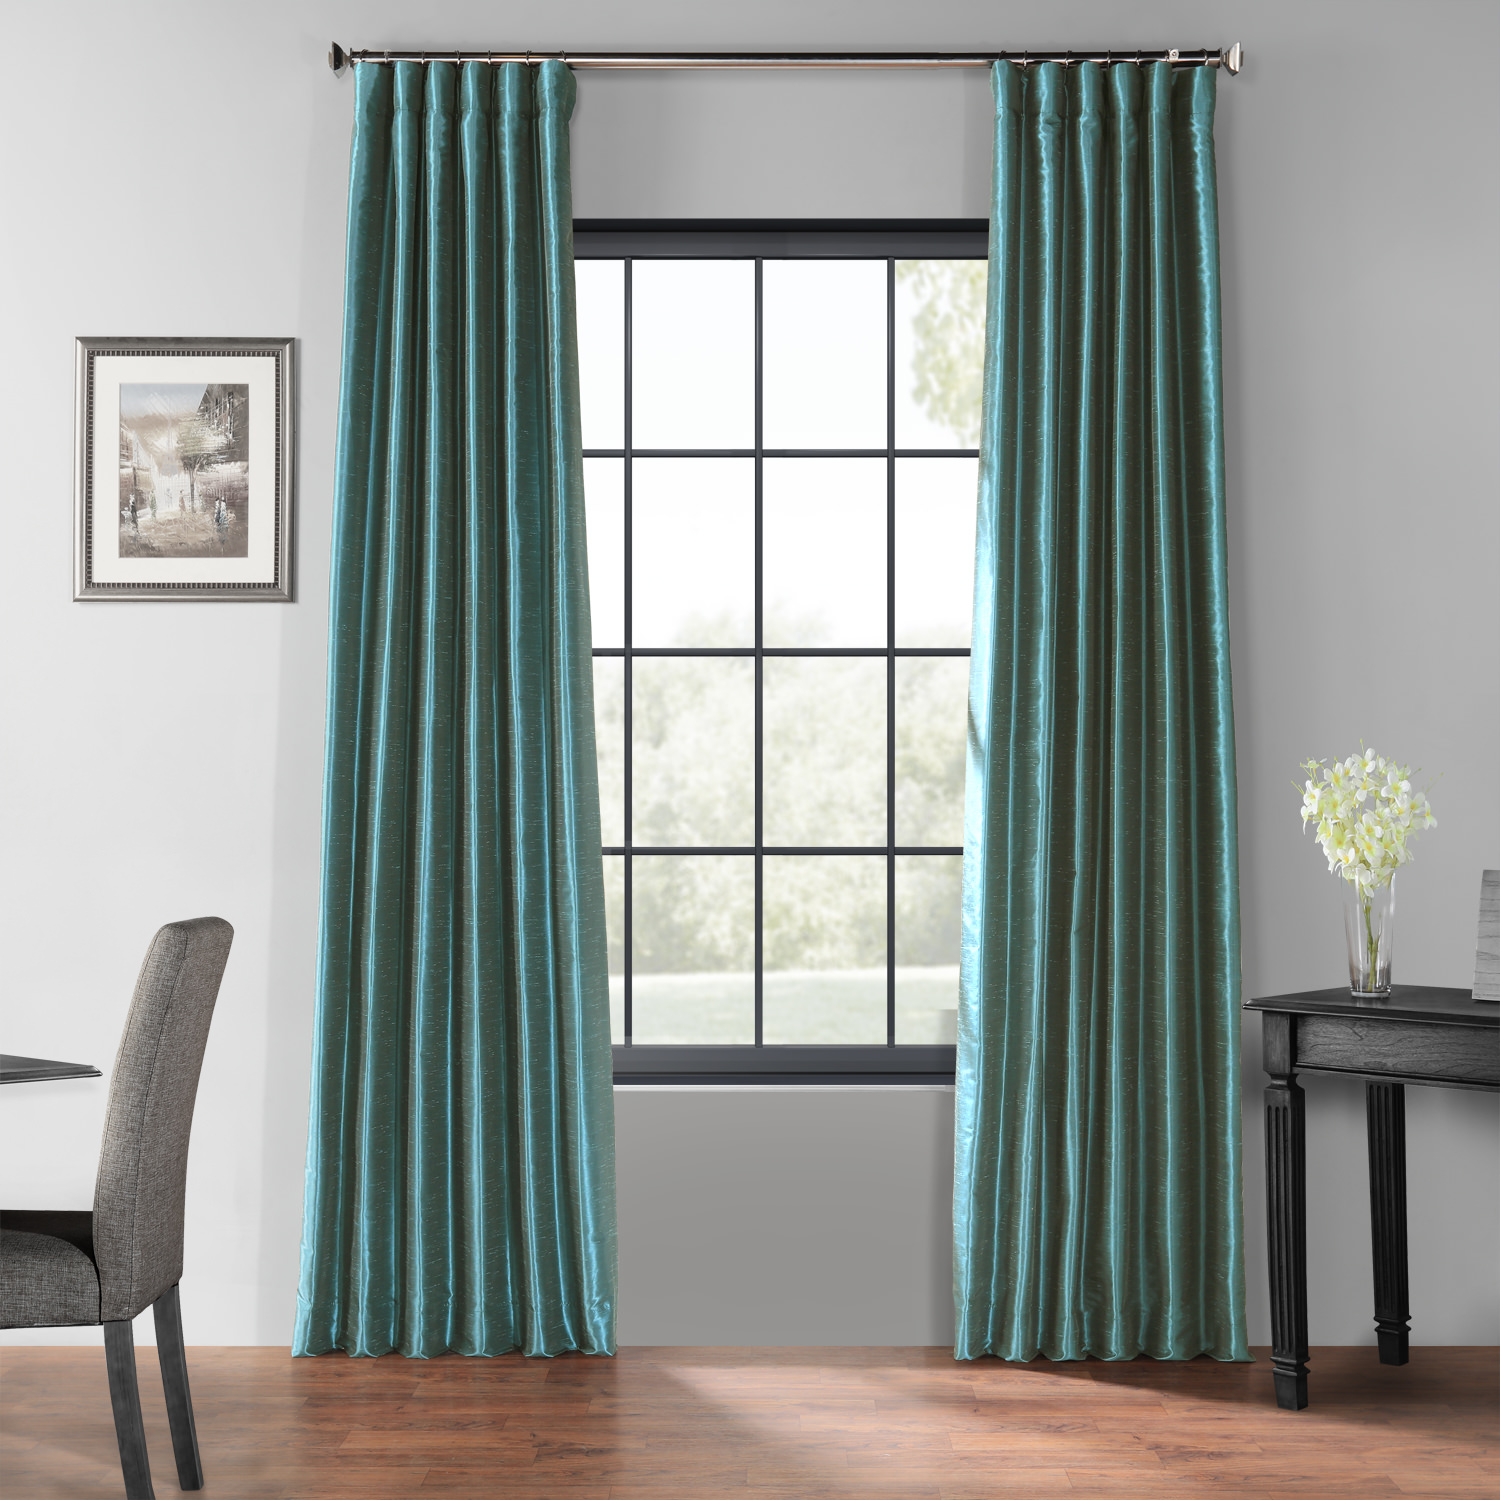 Peacock Blackout Vintage Textured Faux Dupioni Curtain